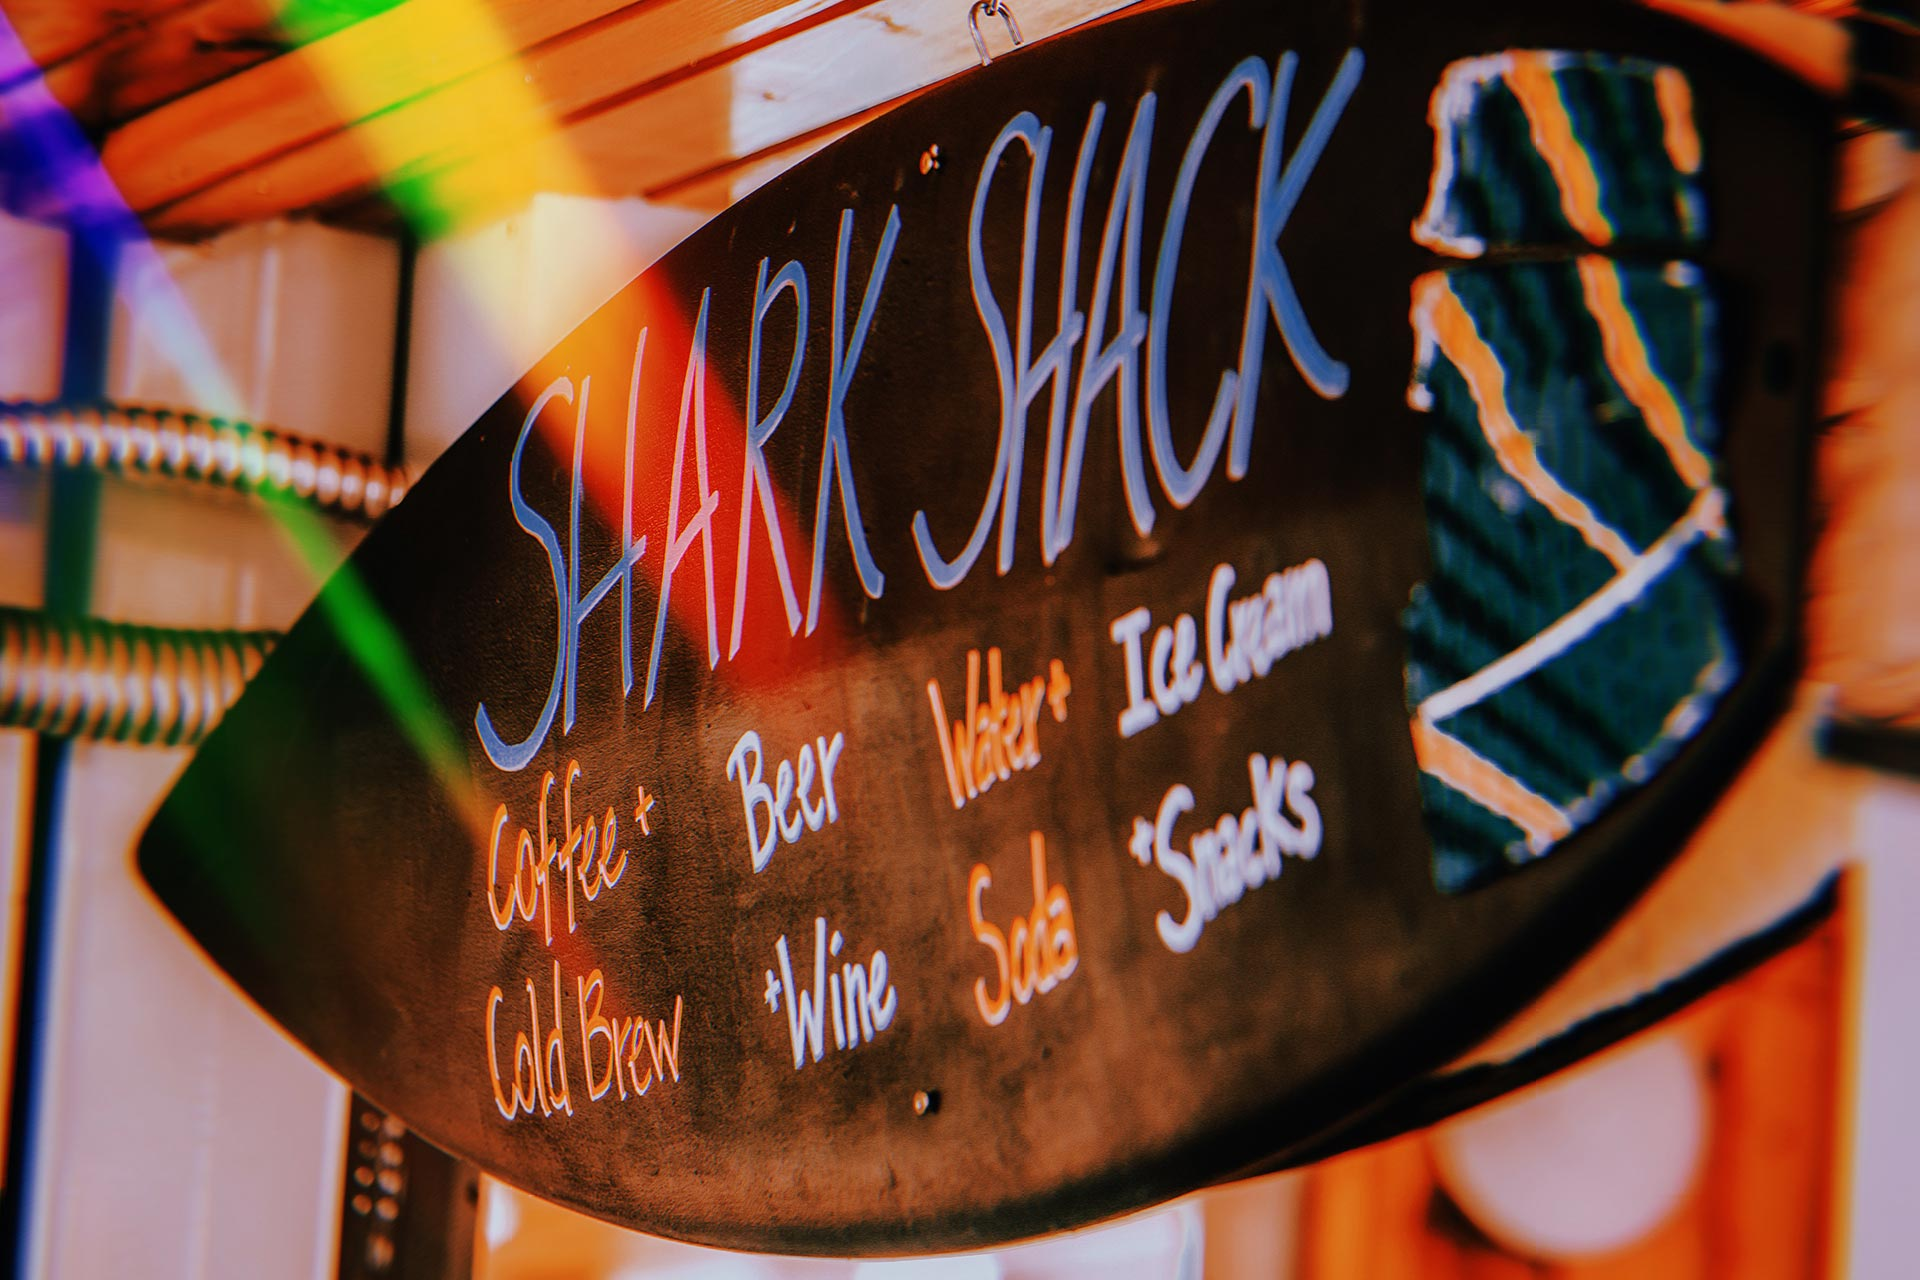 Image of Shark Shack Menu